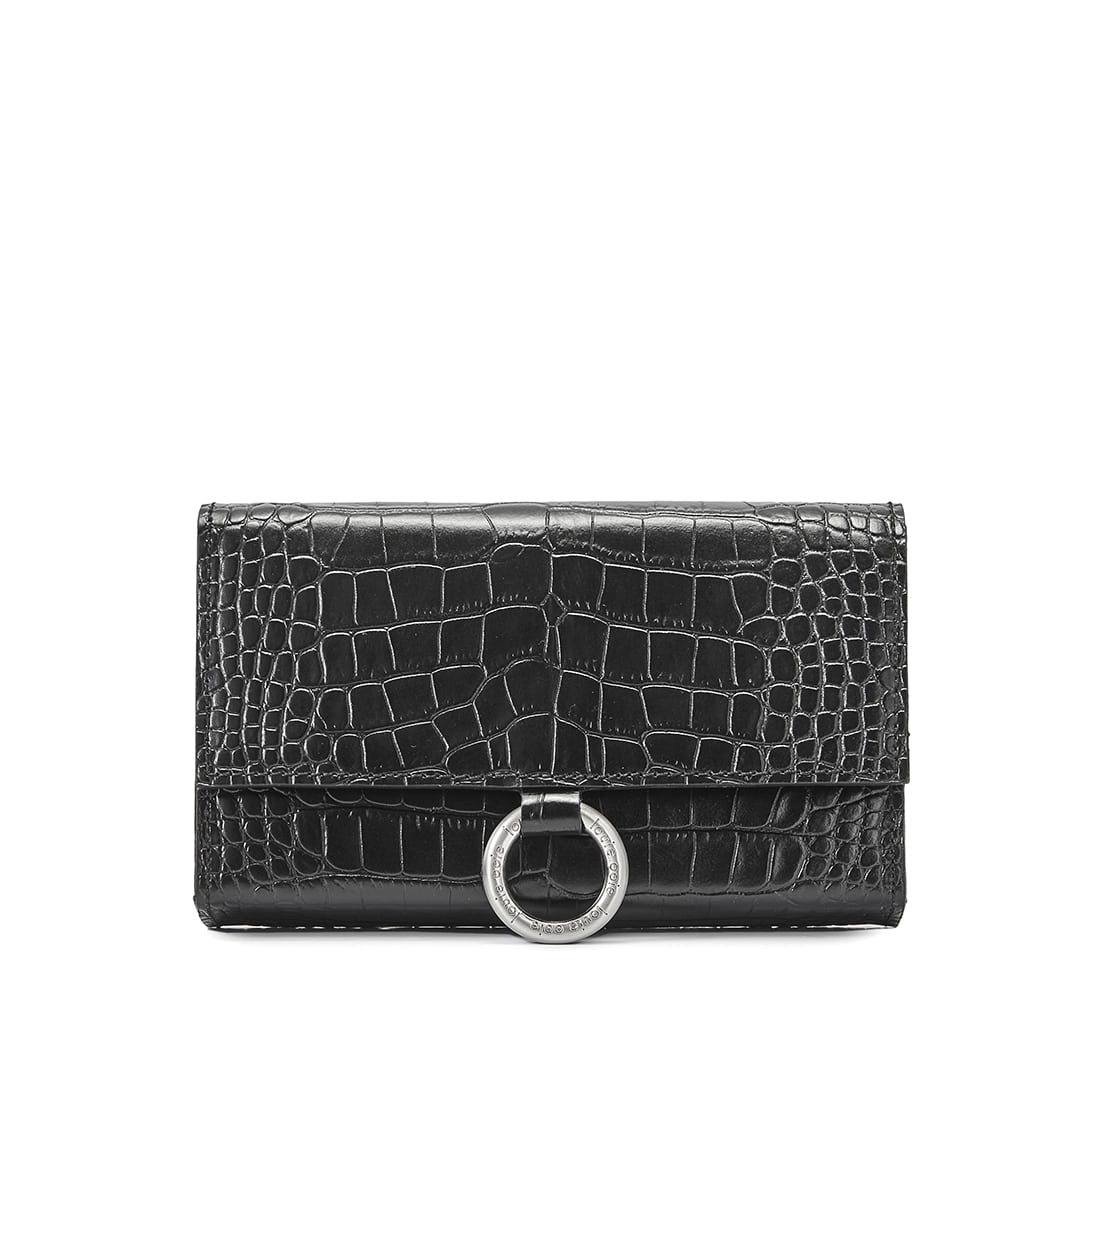 nina bag - black embo